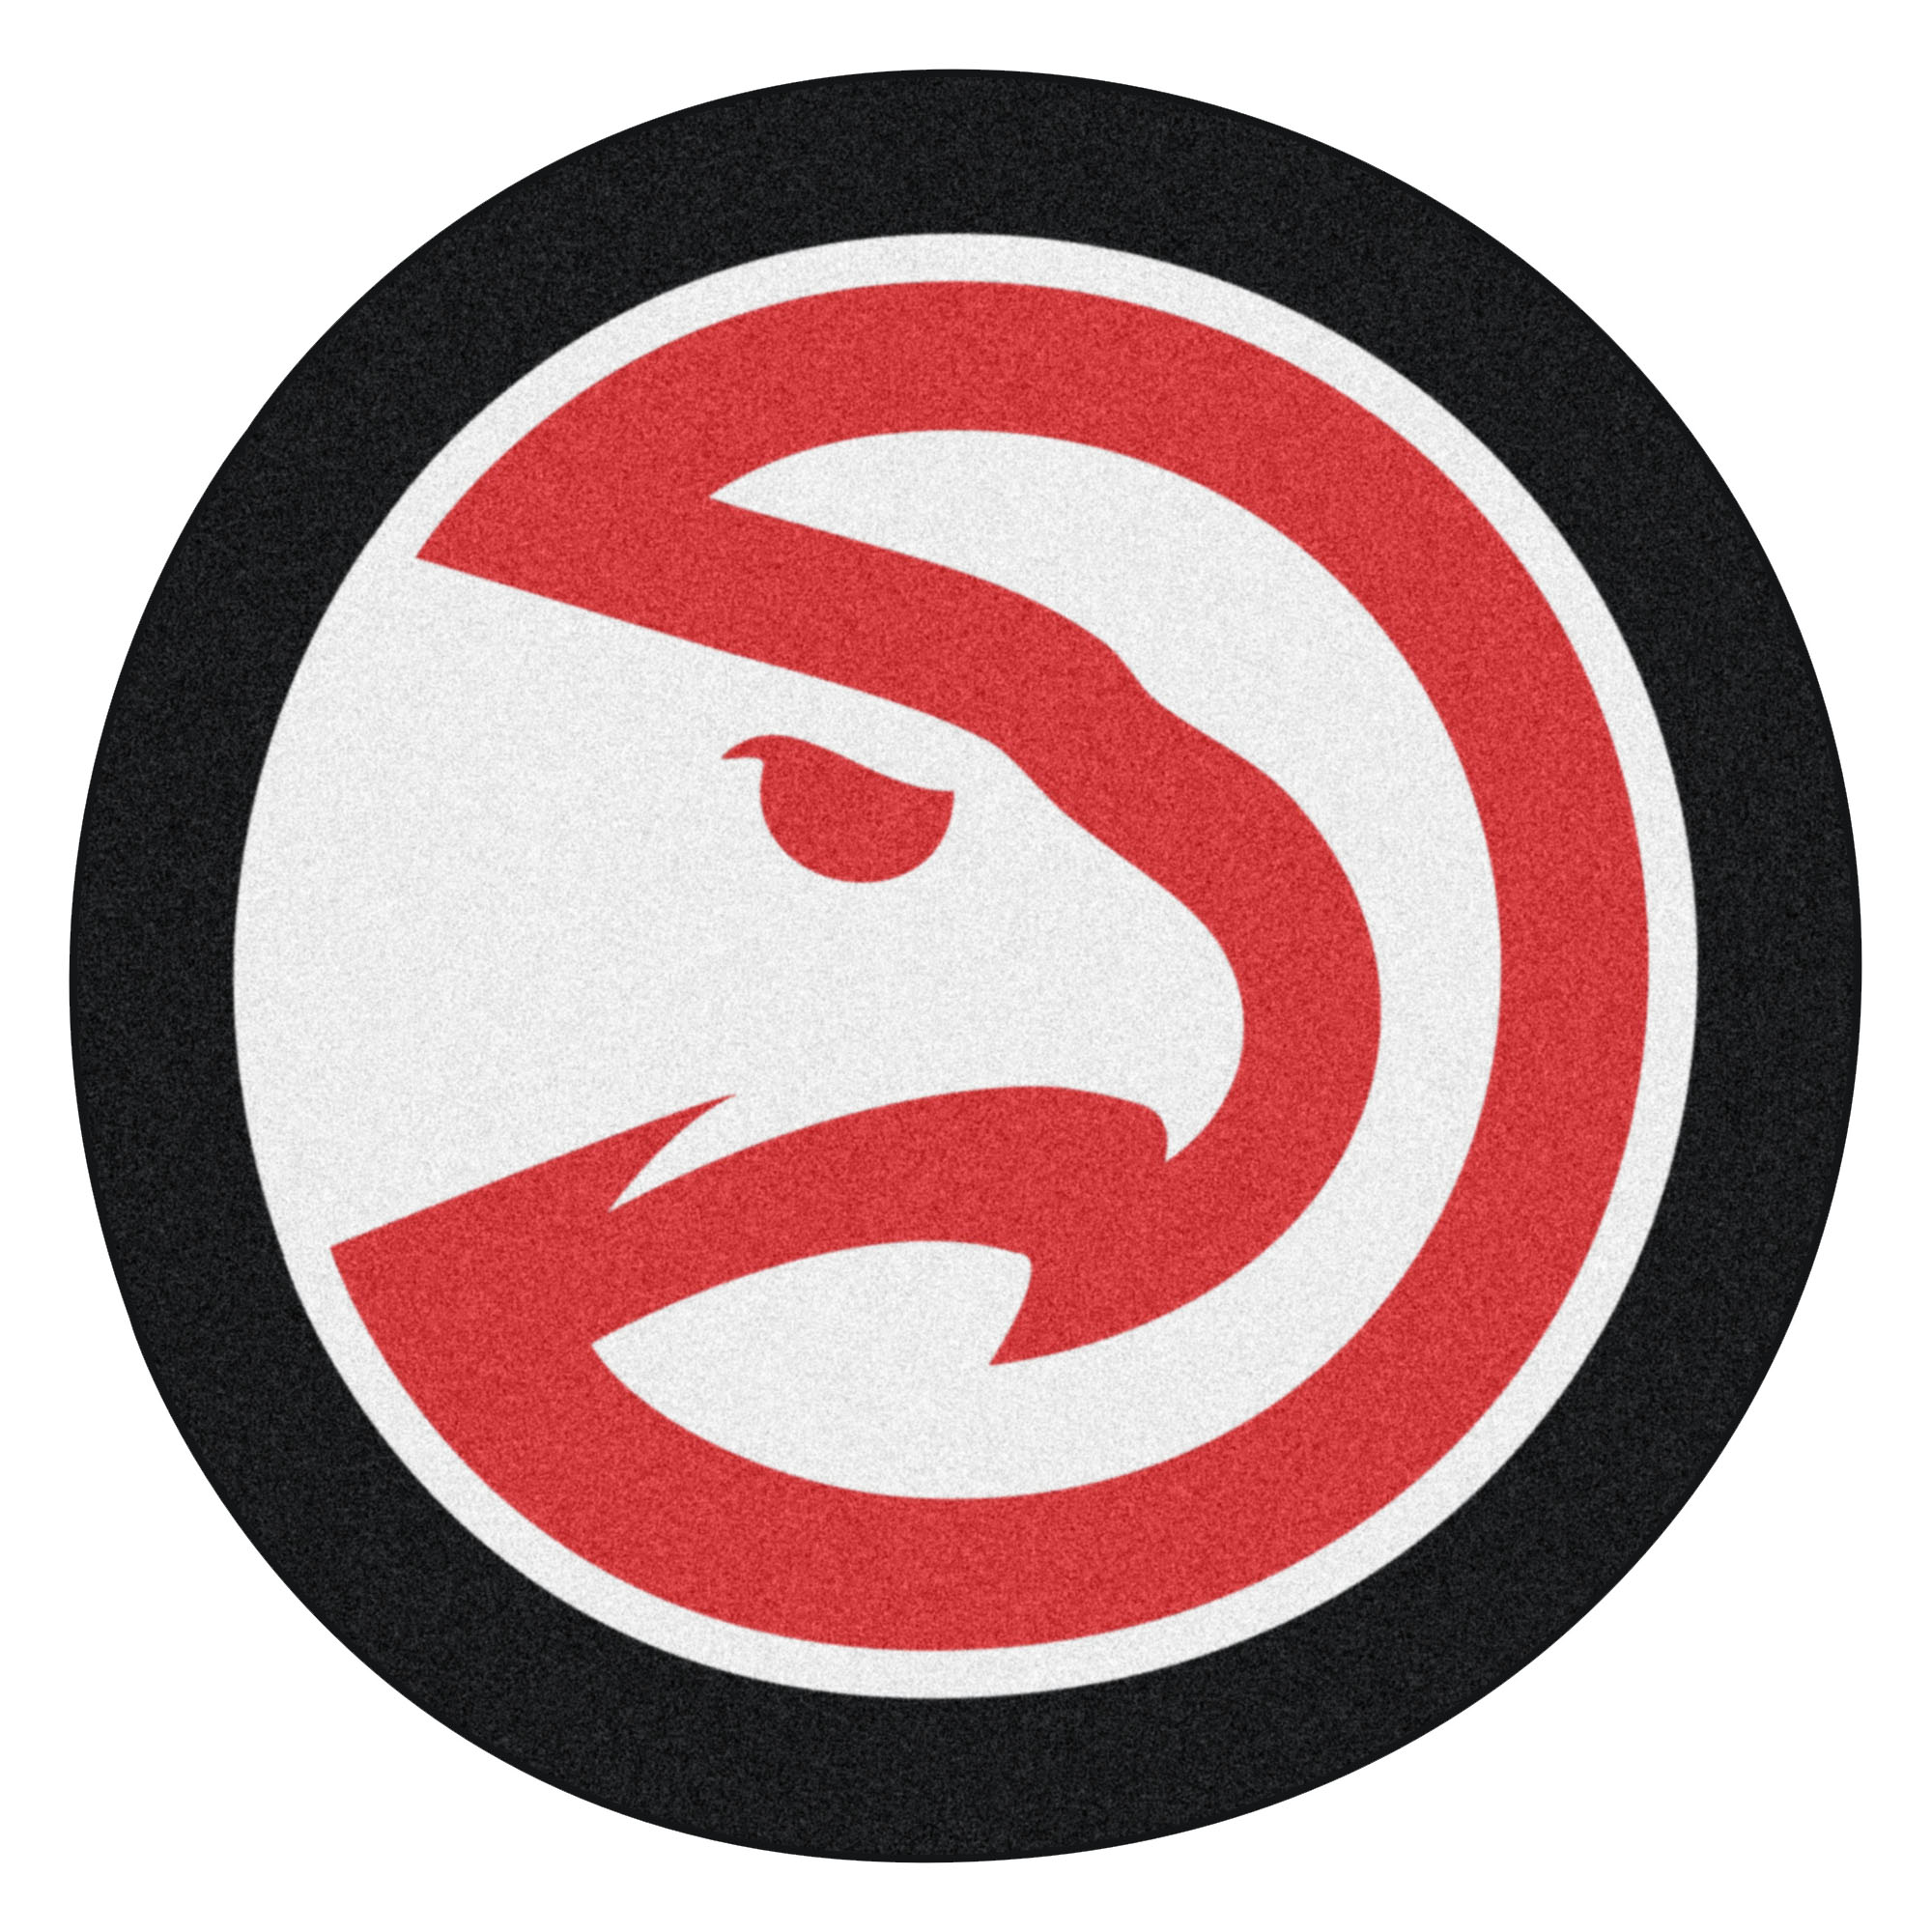 NBA Atlanta Hawks Mascot Novelty Logo Shaped Area Rug